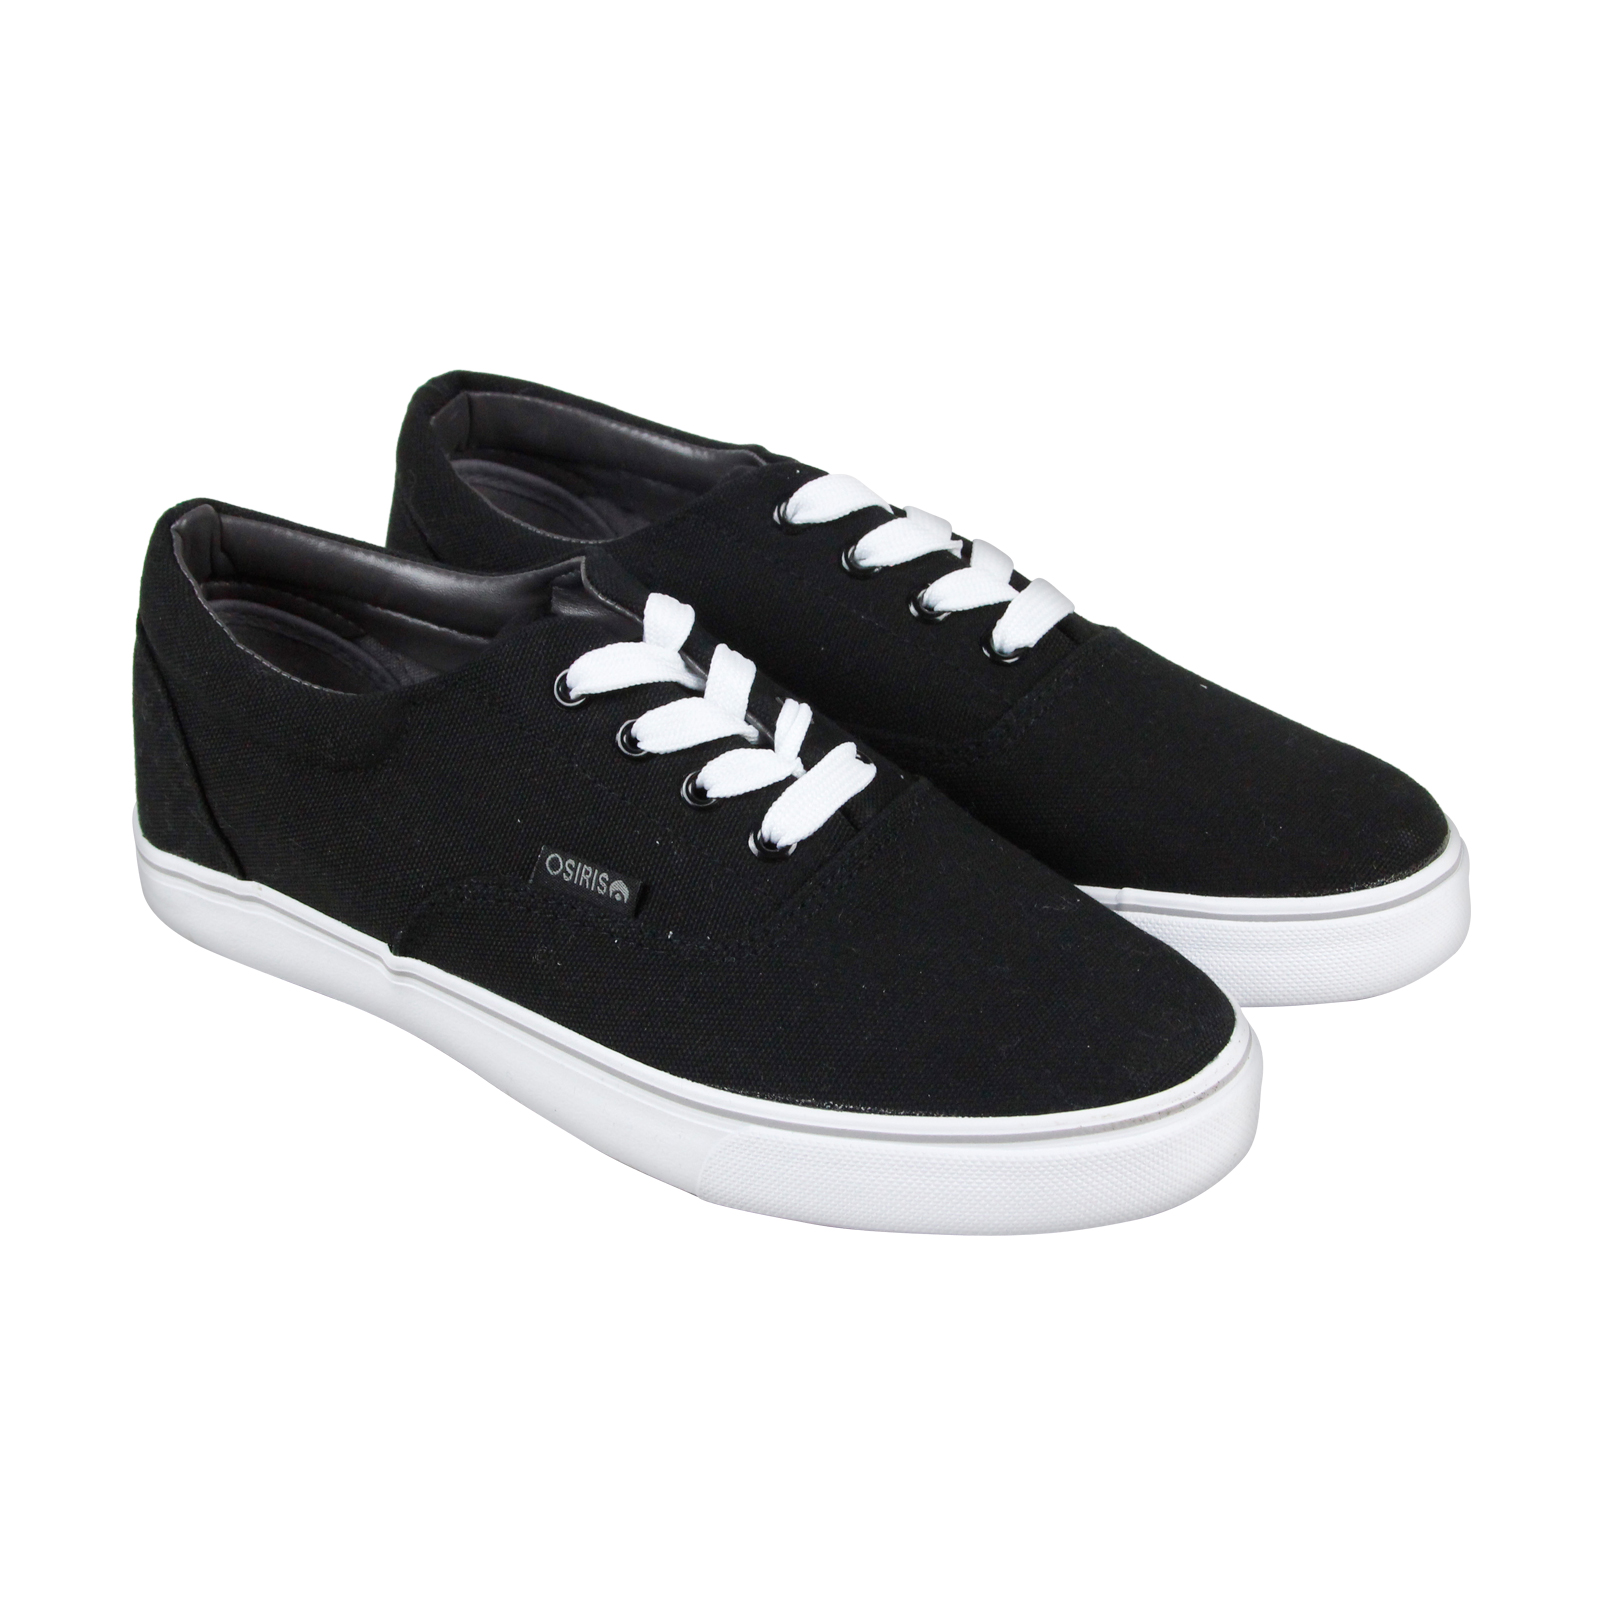 Osiris Sd Mens Black Canvas Lace Up Sneakers Shoes